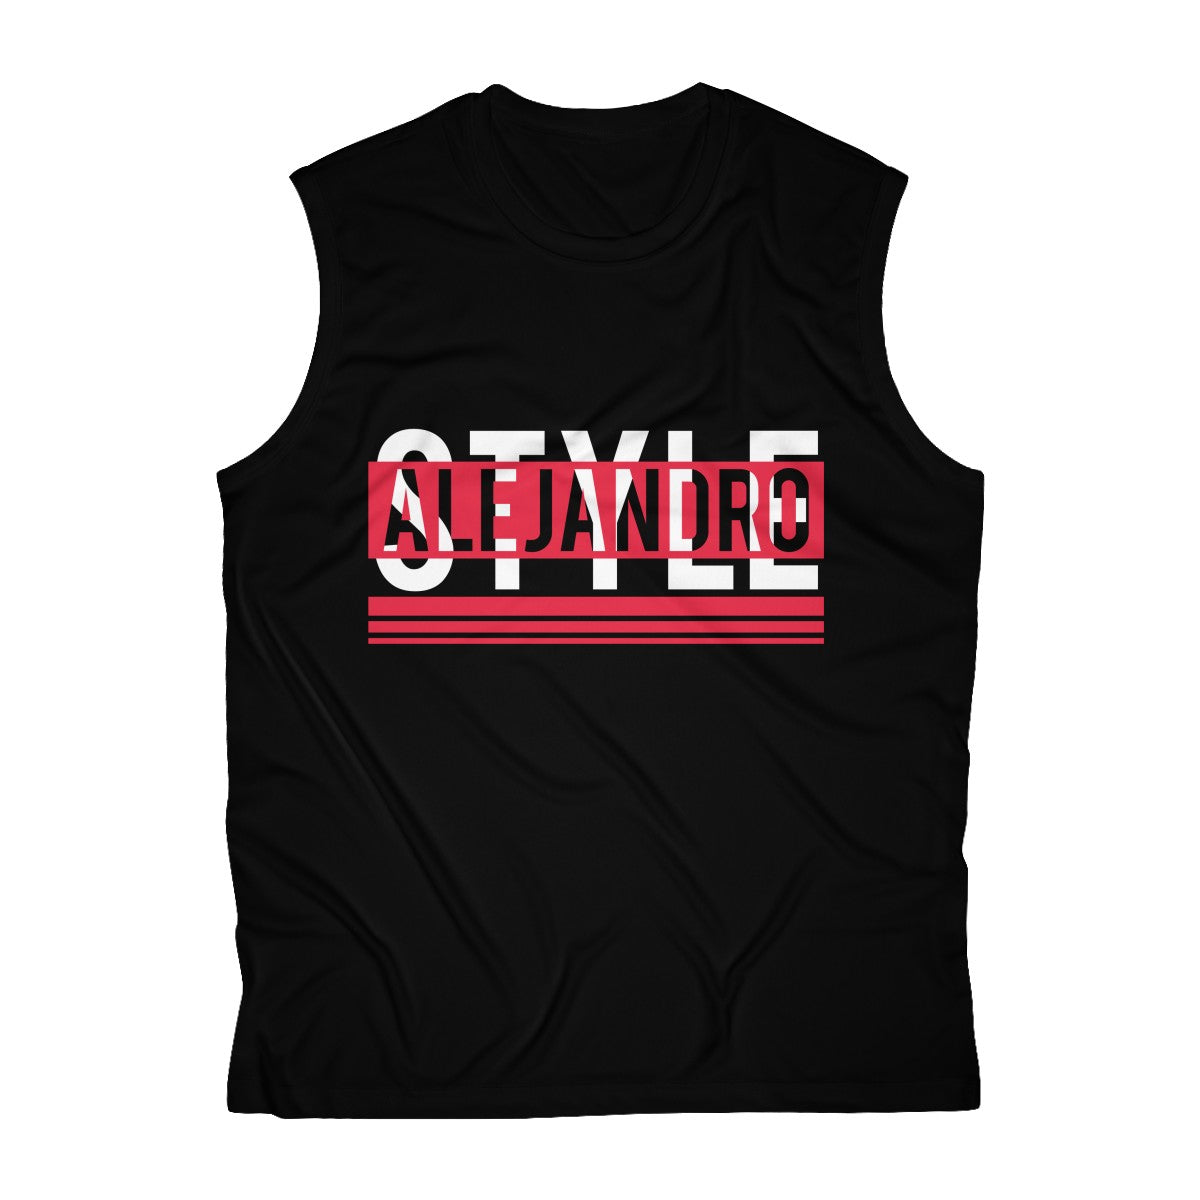 Men's Sleeveless Performance Dry-fit